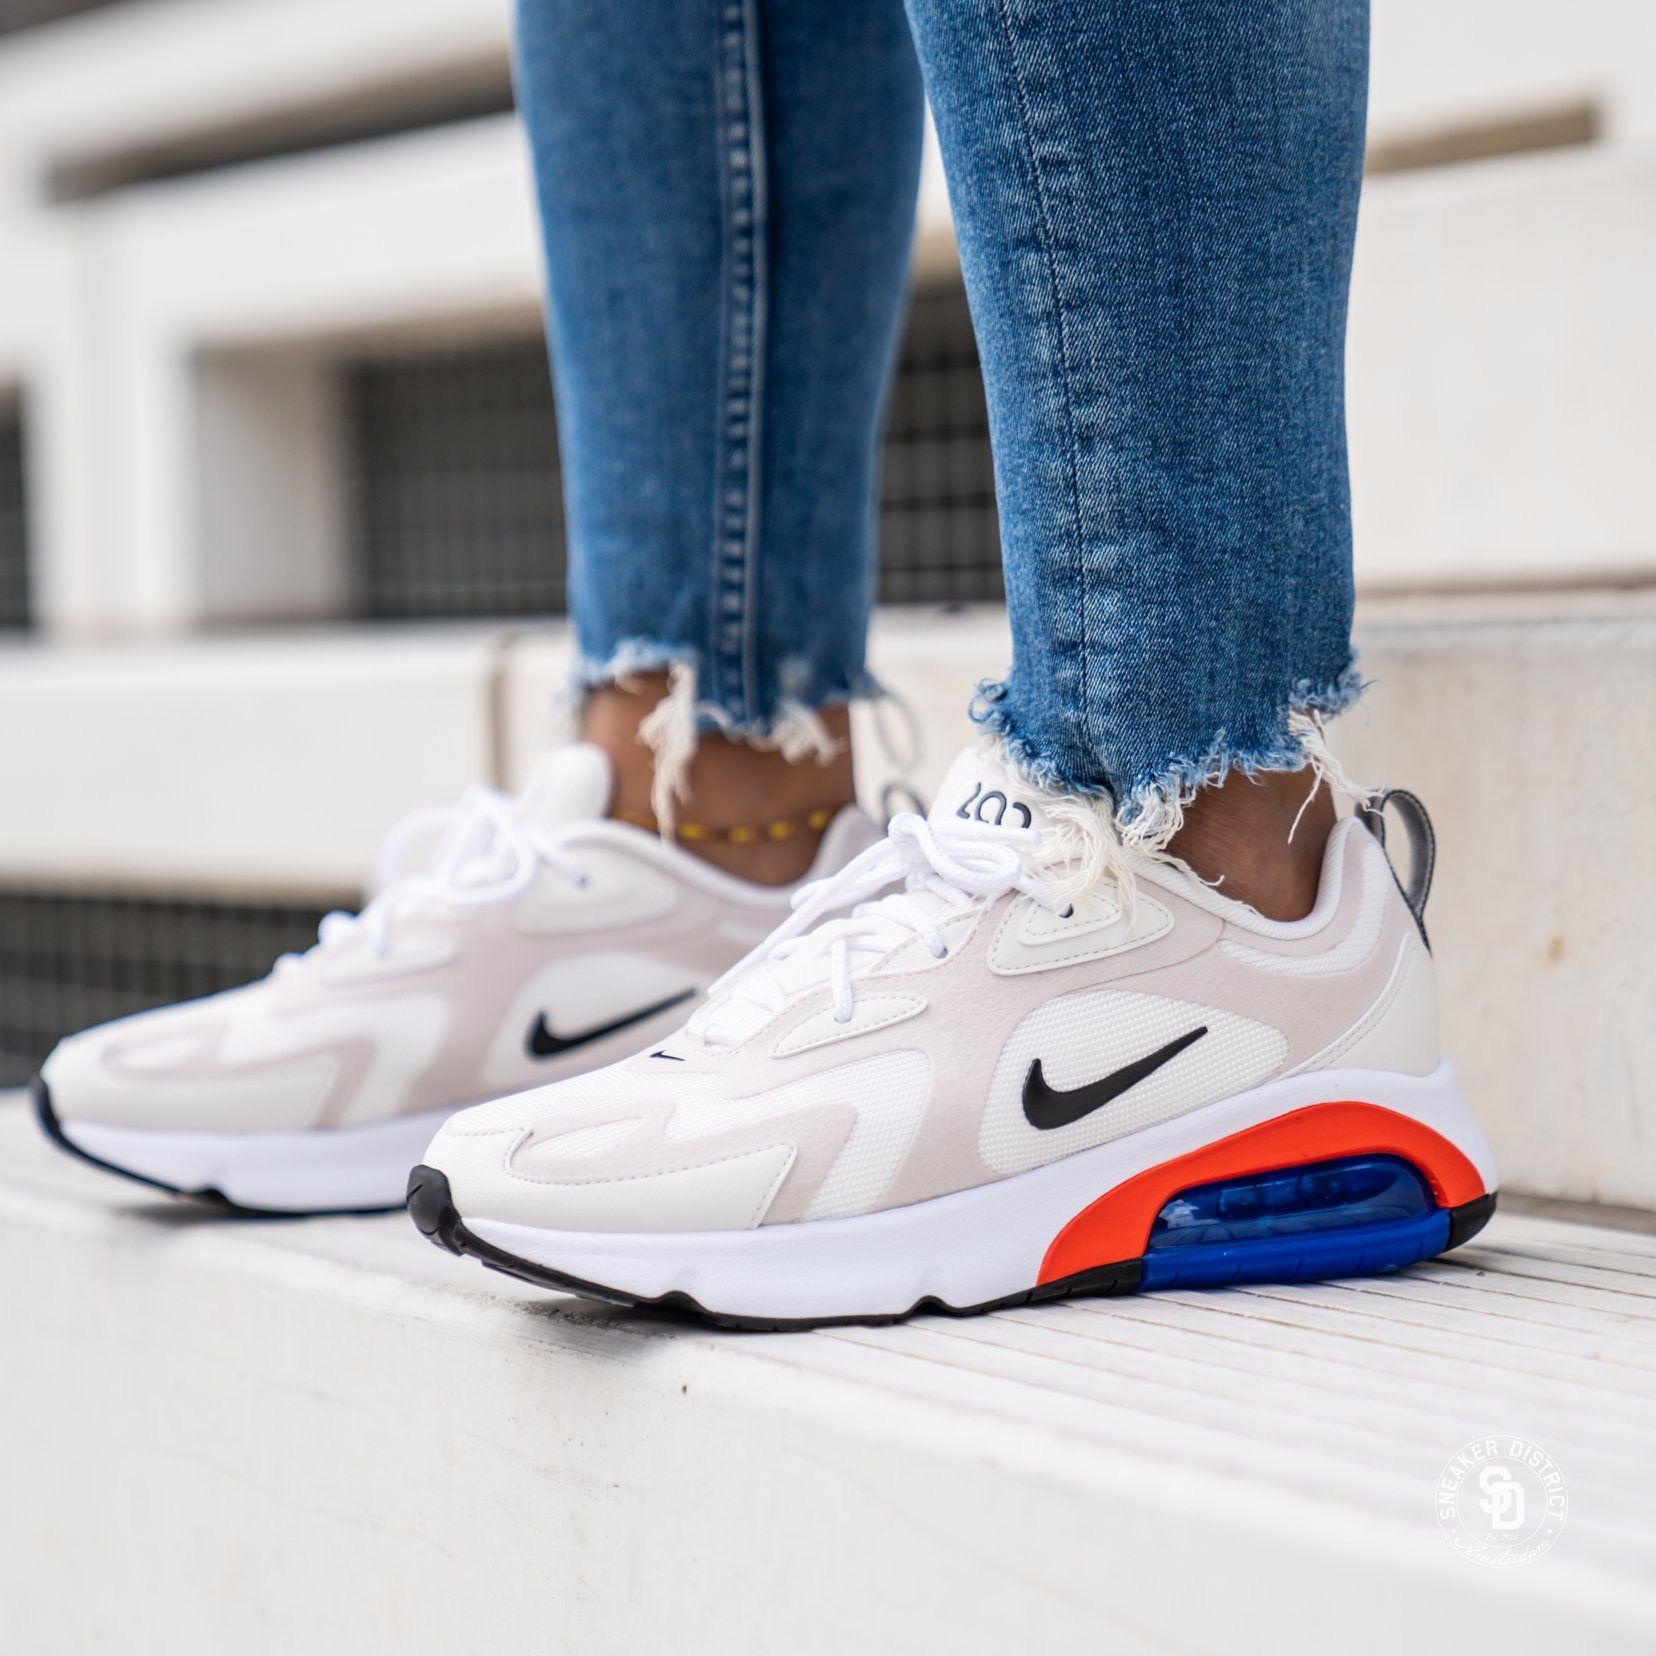 Women's Air Max 200 Sail/Black-Desert Sand | Vrouwen nike ...